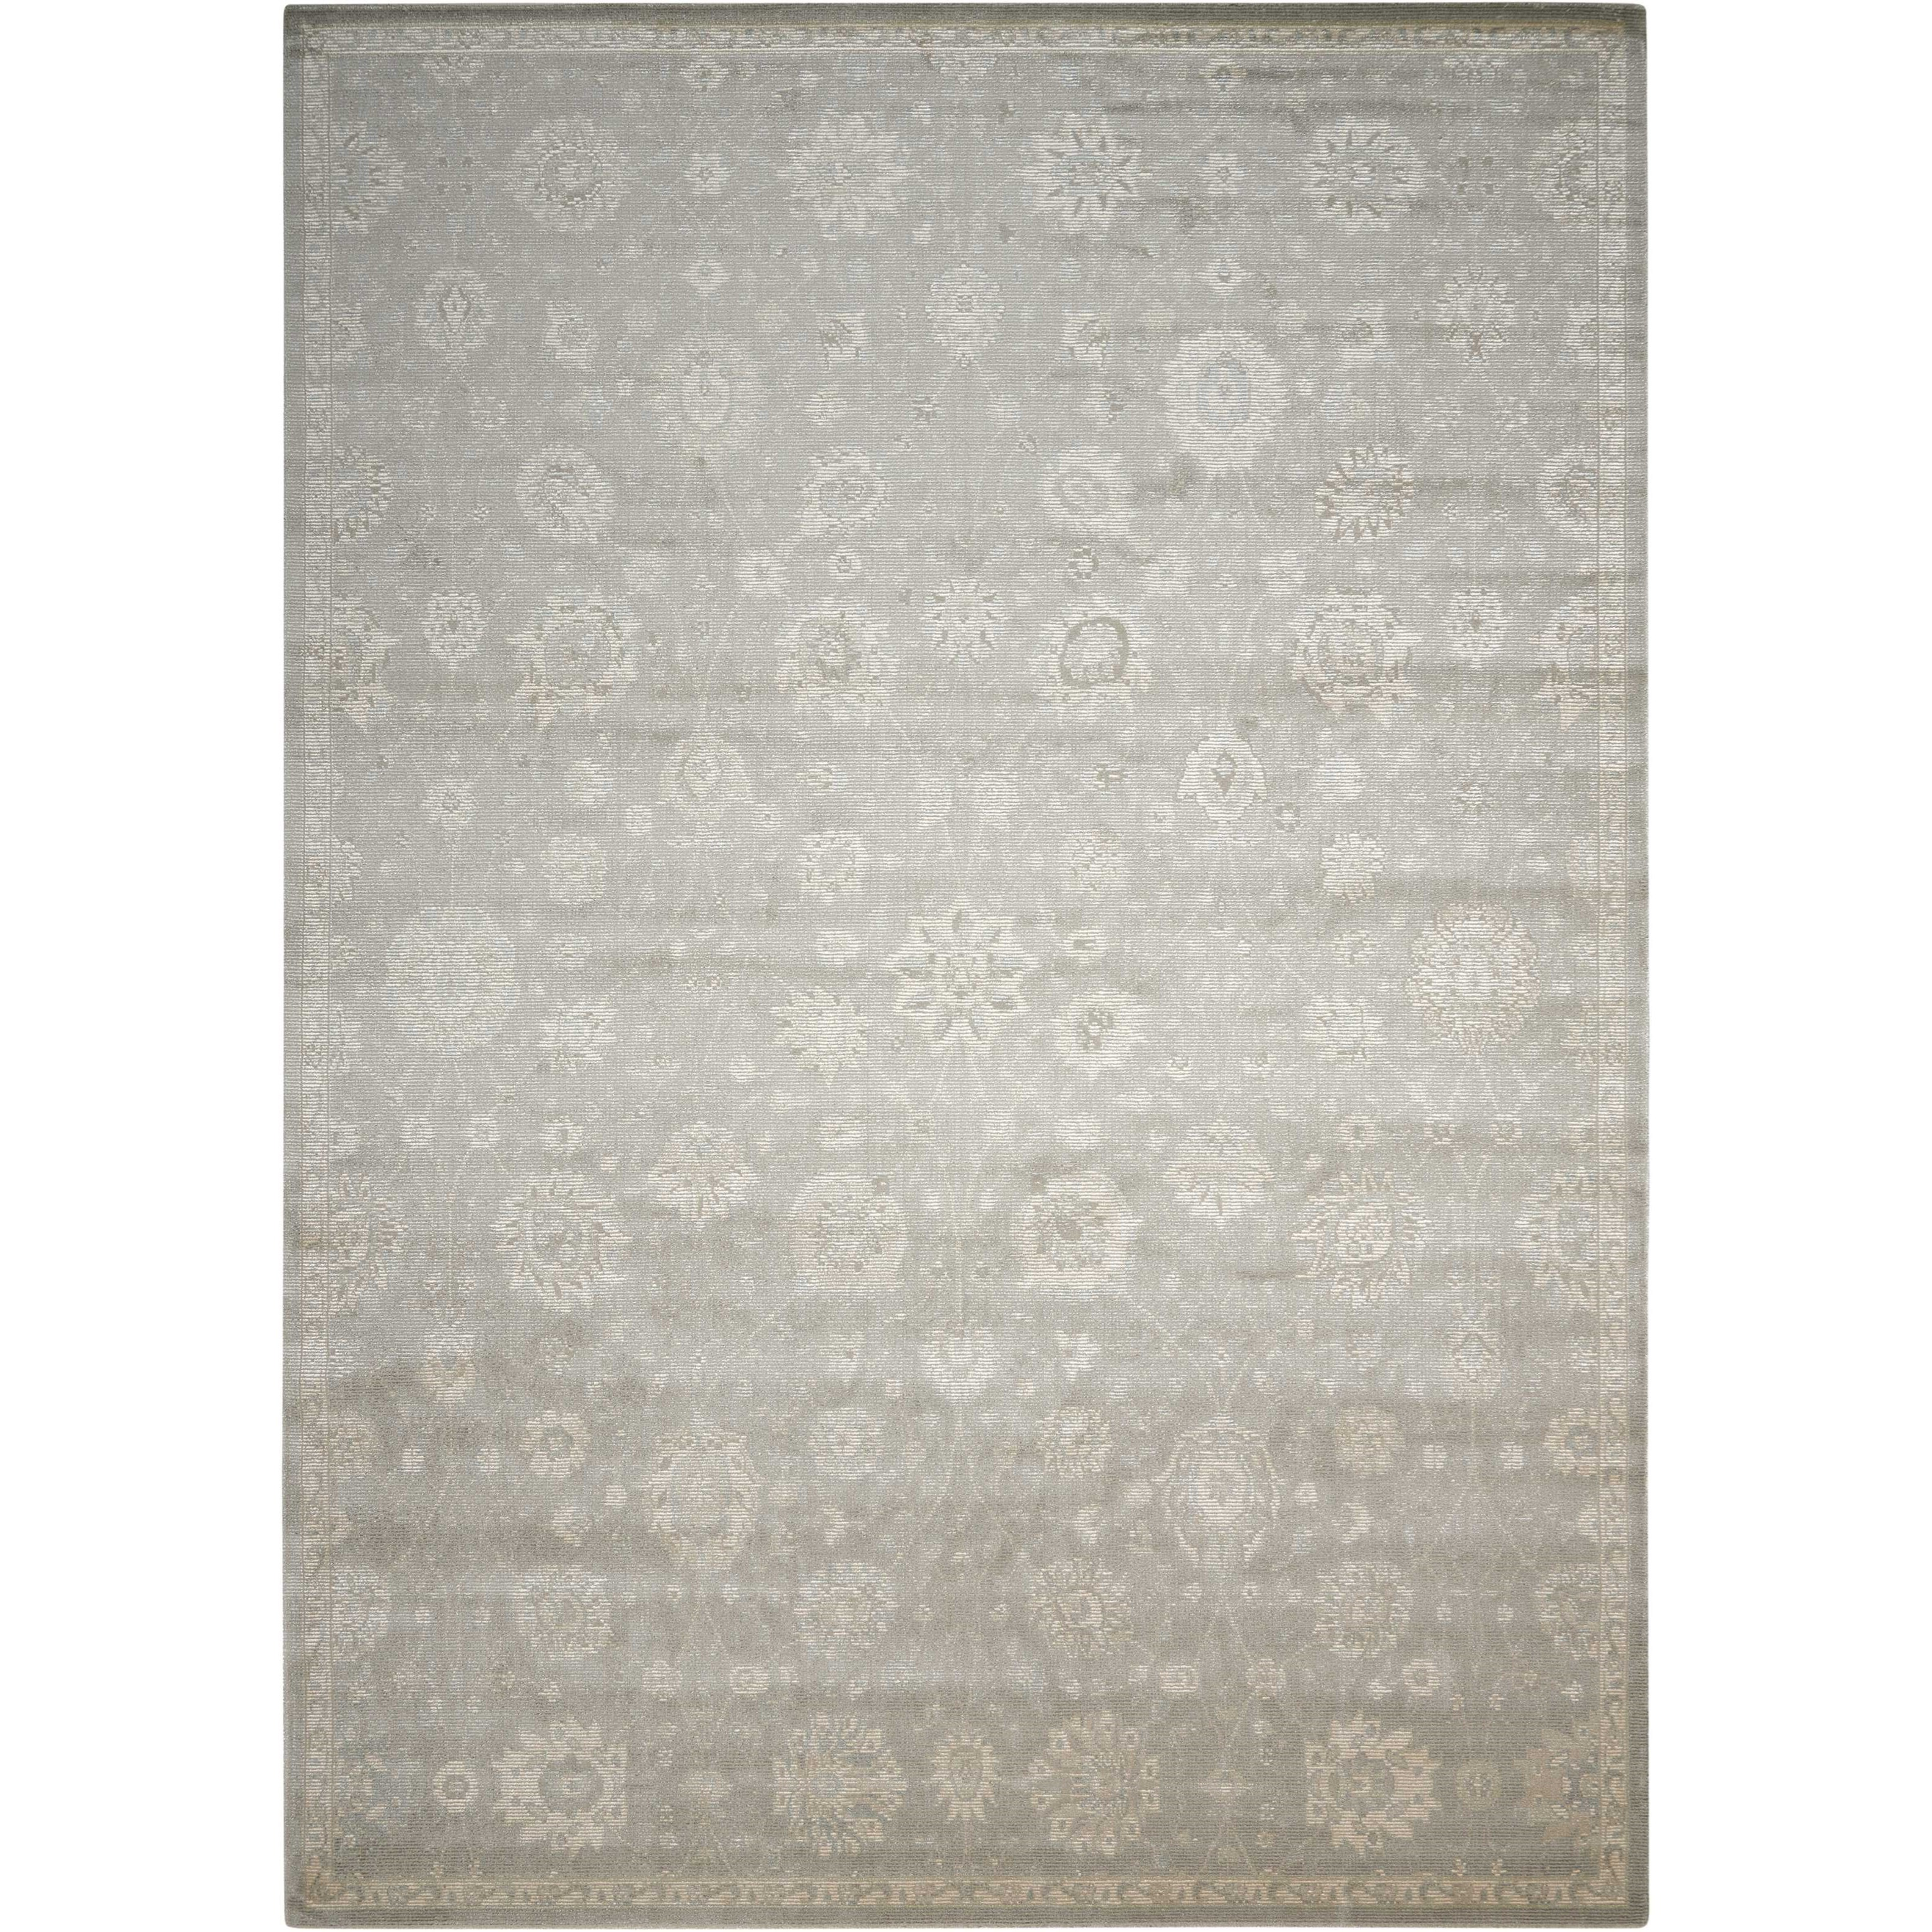 """Luminance 7'6"""" x 10'6"""" Ironstone Rectangle Rug by Nourison at Home Collections Furniture"""